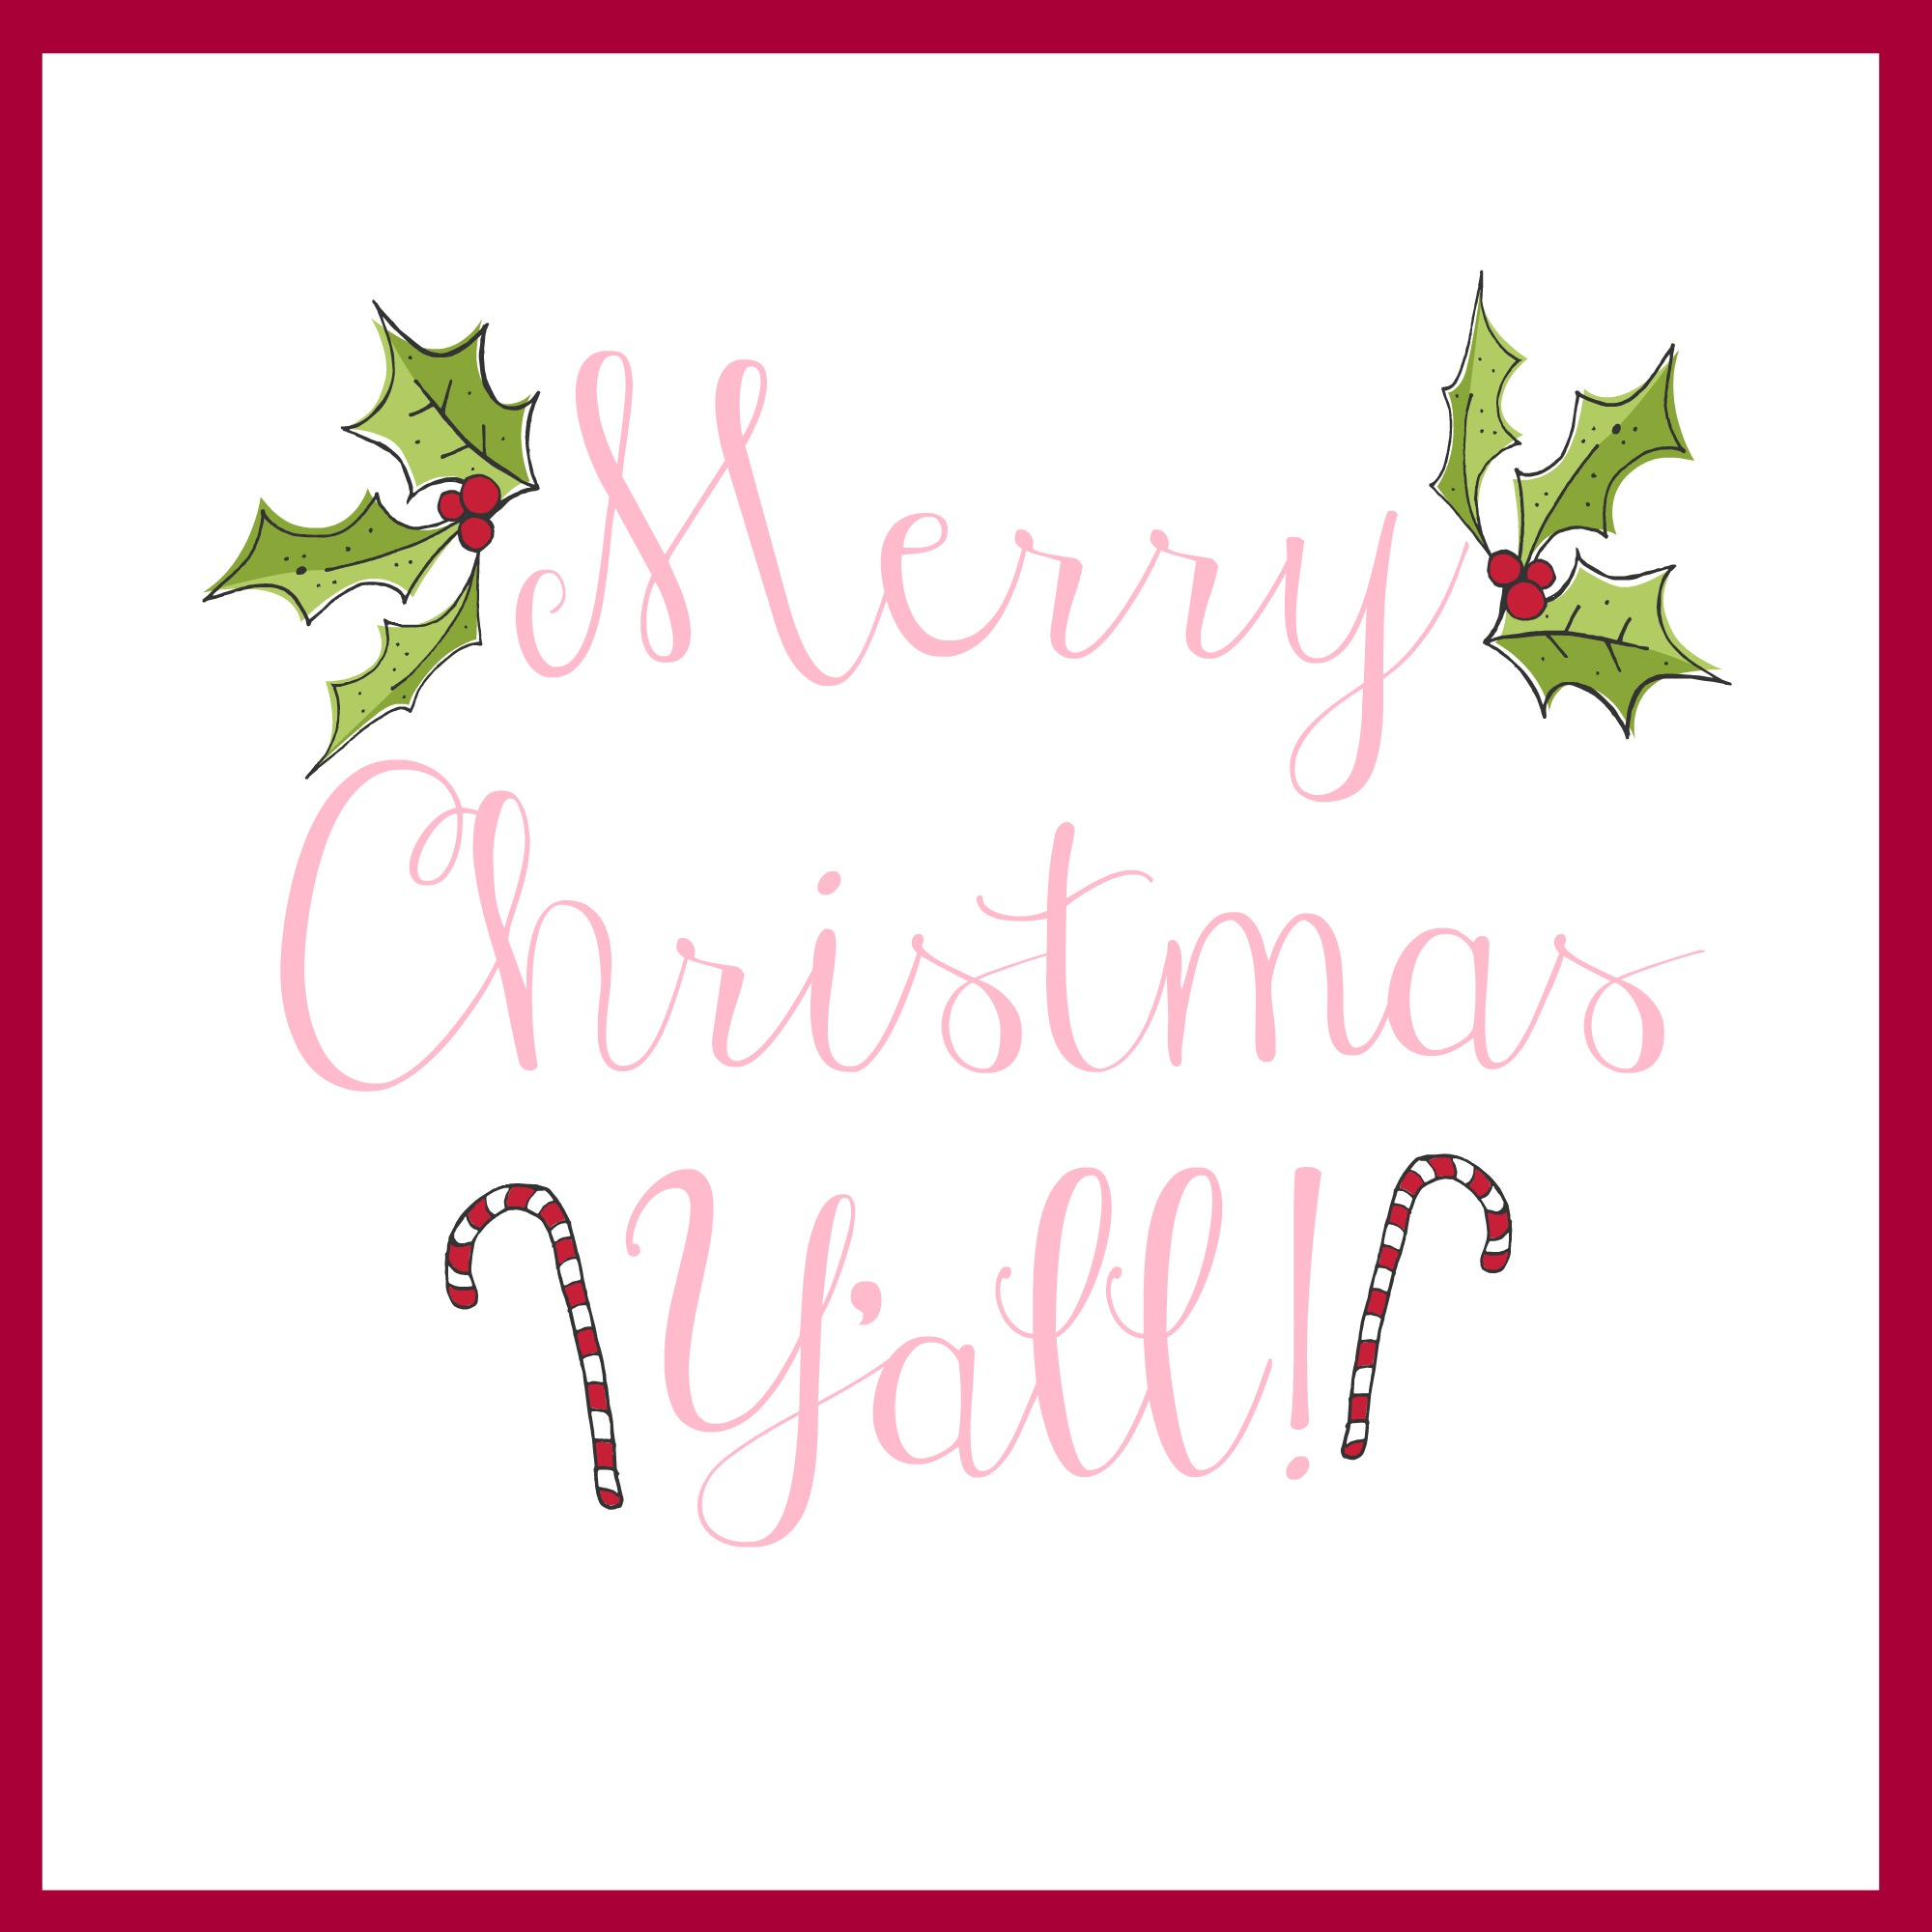 graphic about Merry Christmas Printable referred to as Merry Xmas Yall Printable